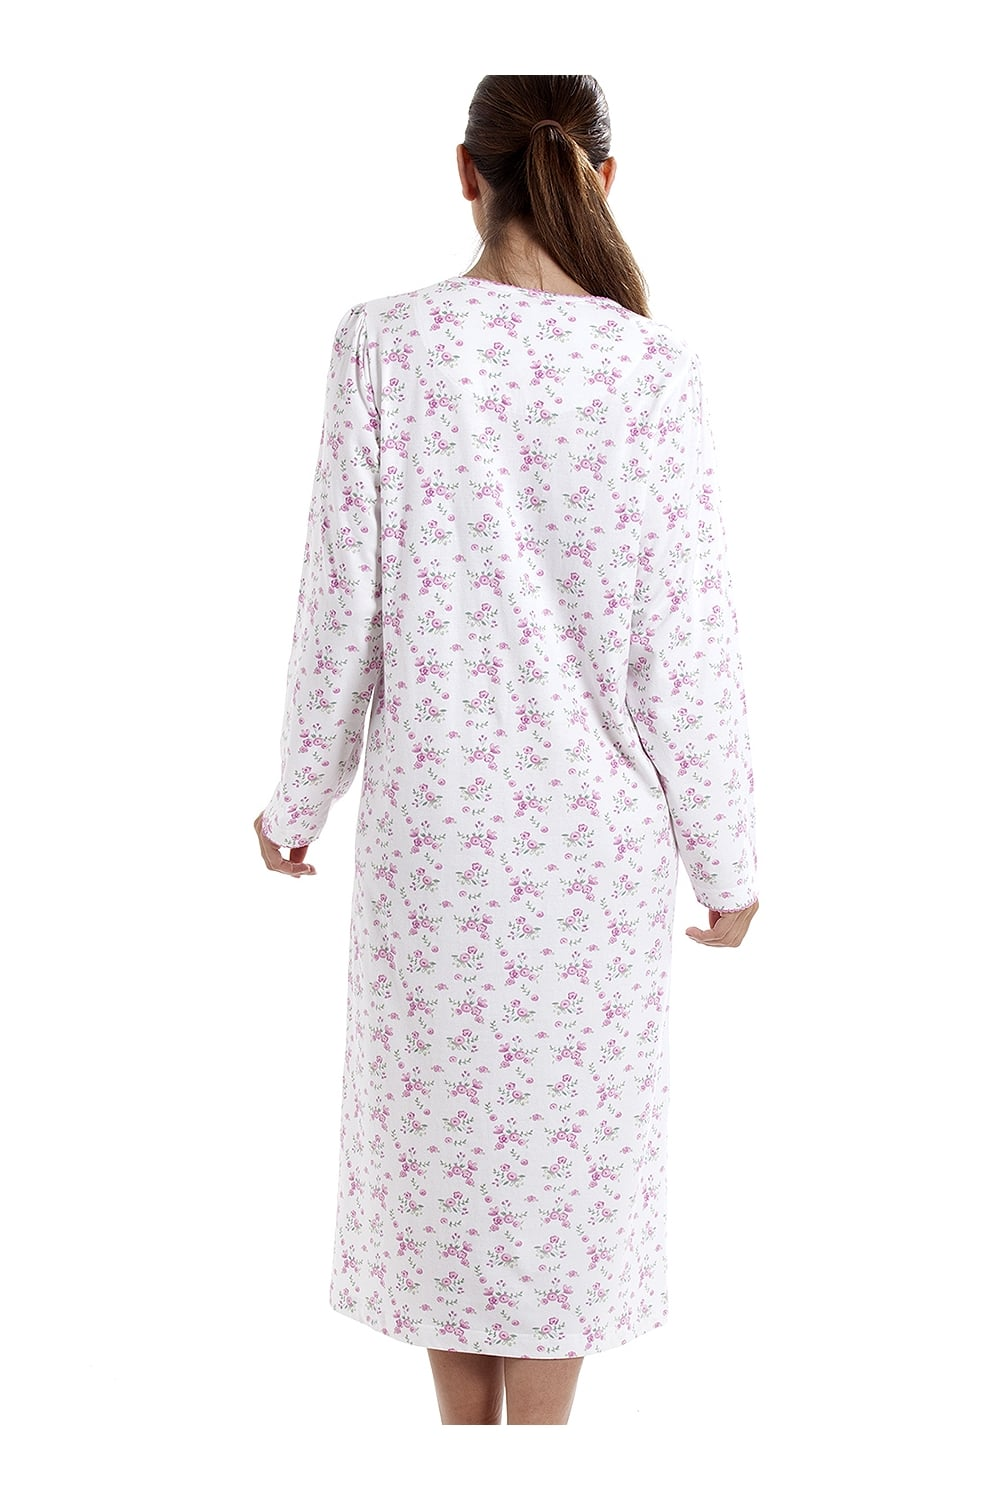 6a6705fea5 Camille Classic Long Sleeve Pink Floral Print 100% Cotton White Nightdress